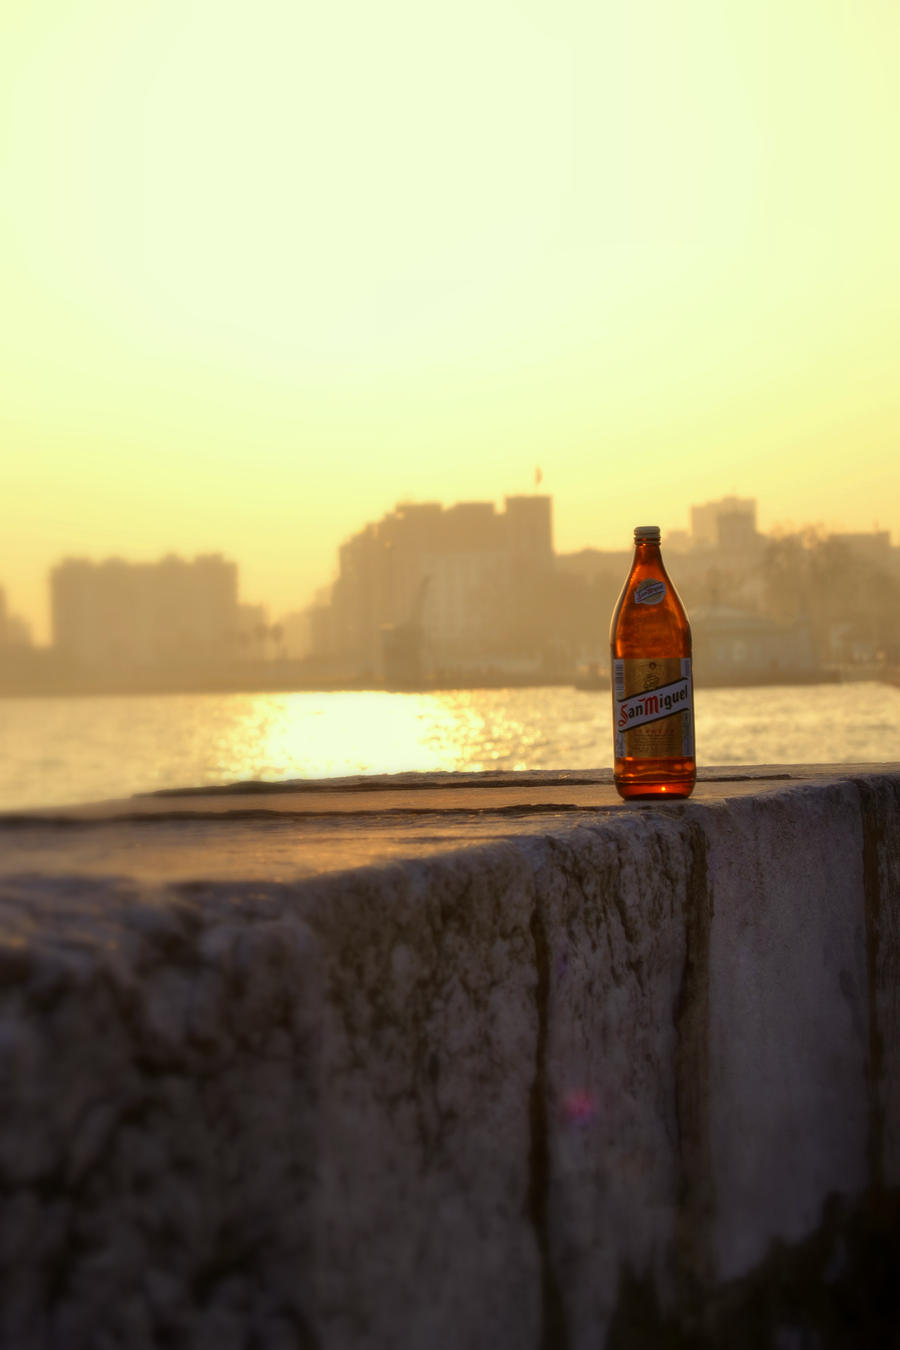 beer at the sunset by gardeenofdreams